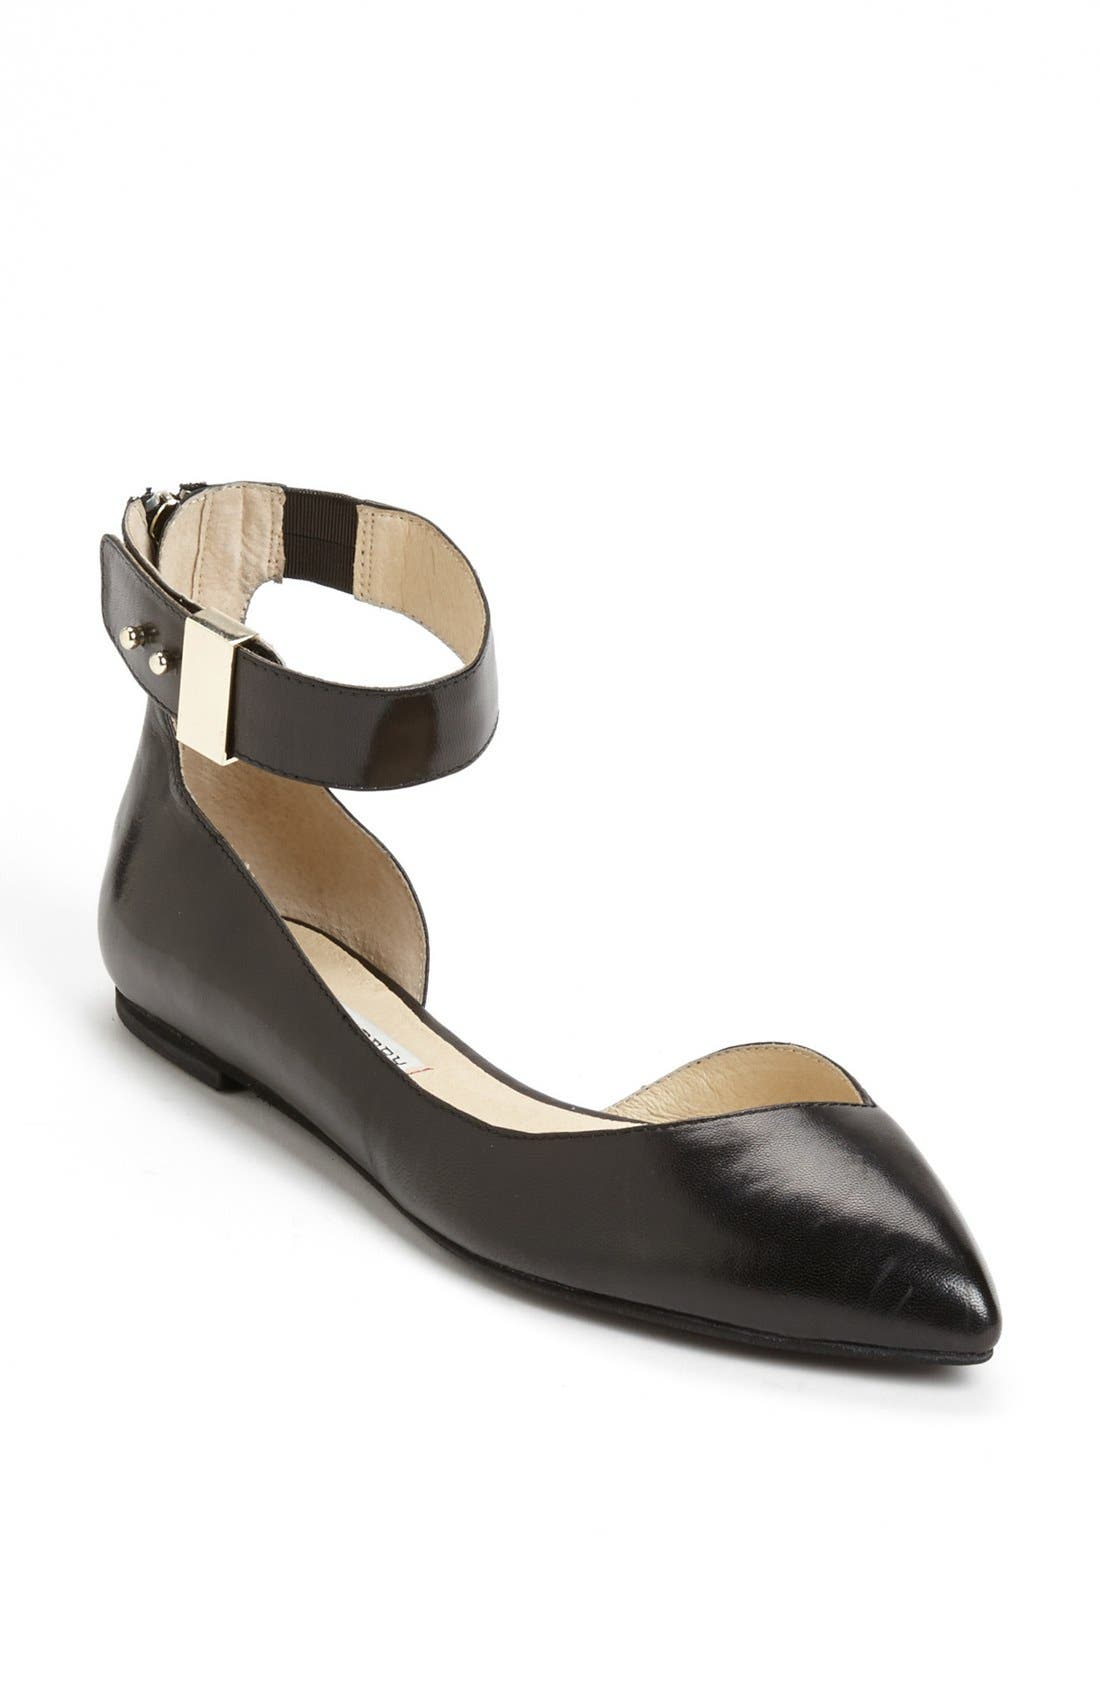 Alternate Image 1 Selected - Kristin Cavallari 'Coraline' Flat